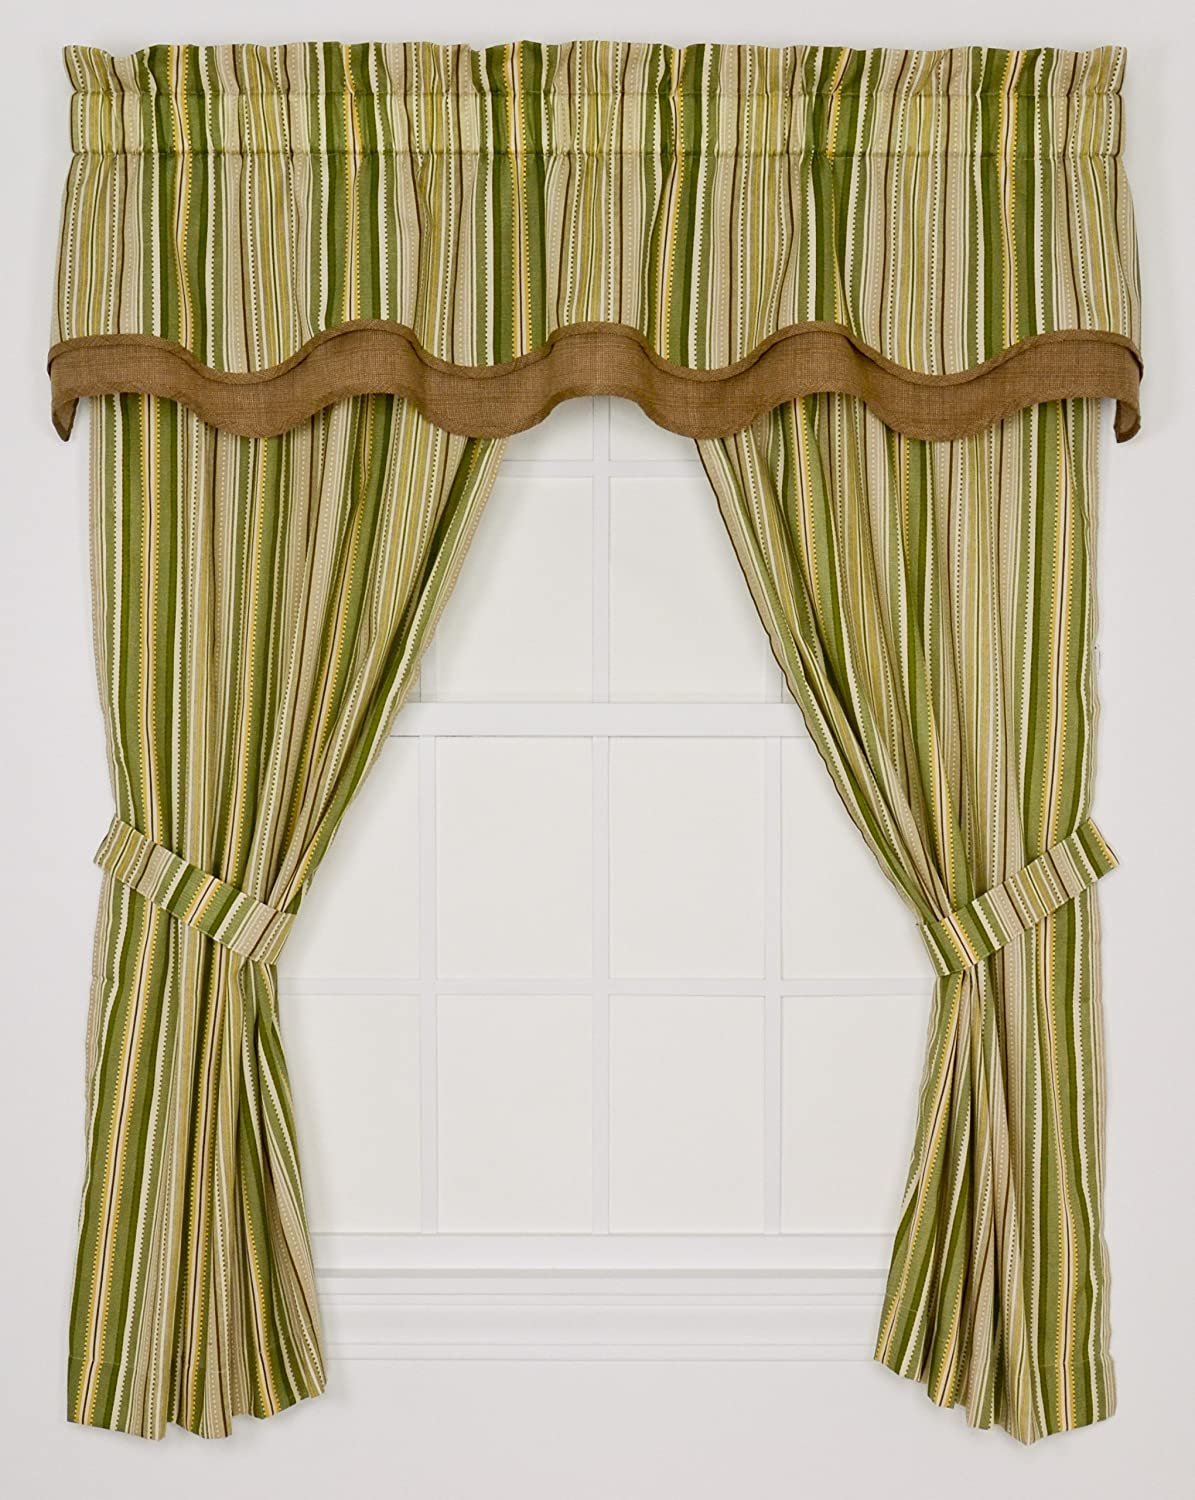 Ellis Curtain Kensington Stripe 68-By-63 Inch Tailored Panel Pair Curtains with Tiebacks, Green Stripe